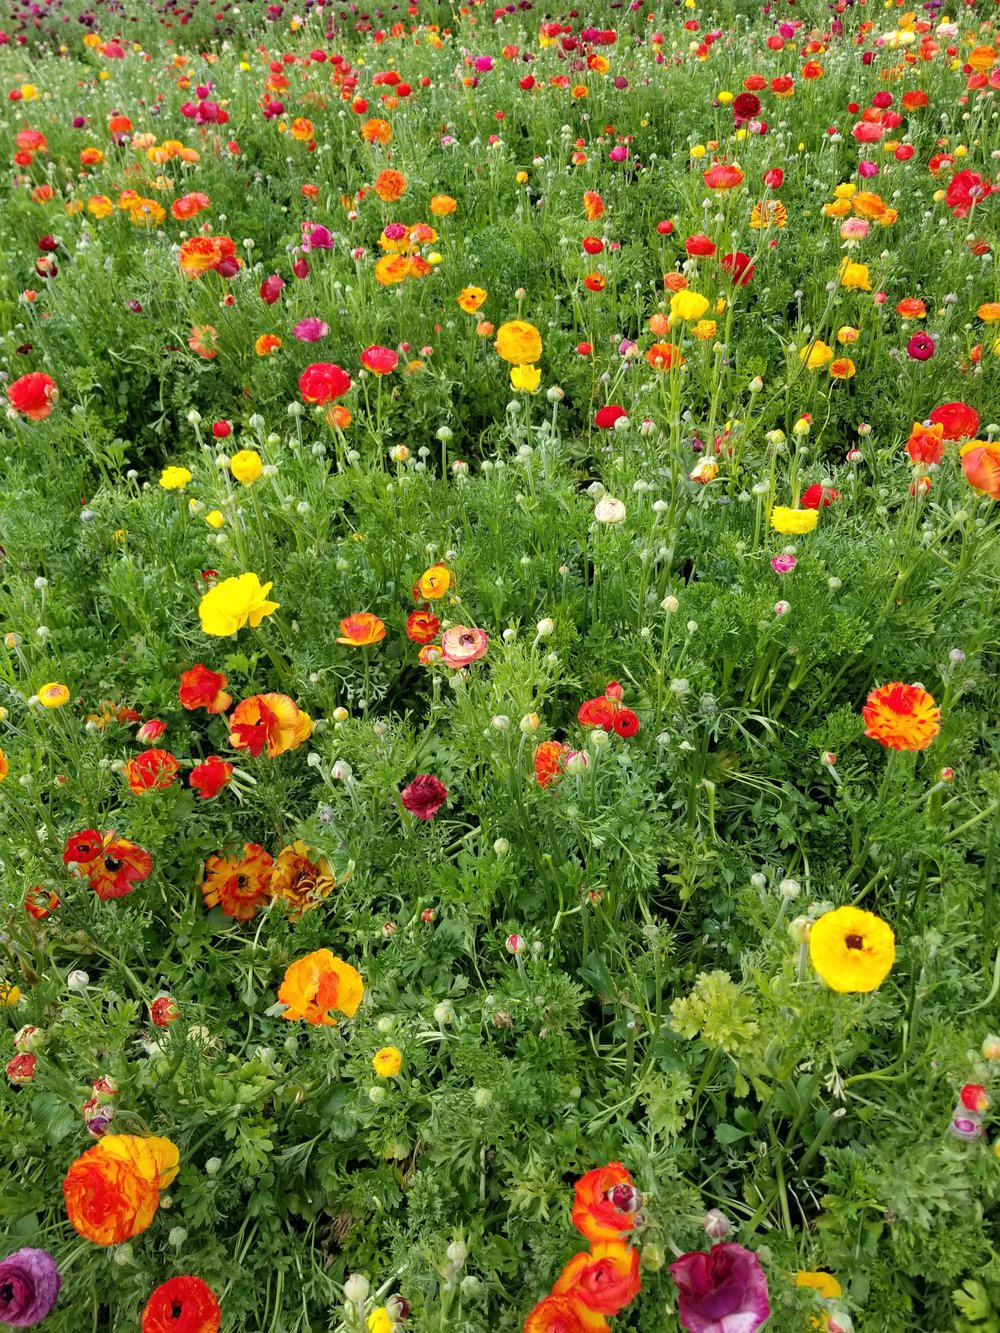 Acres of ranunculus blooming in Carlsbad, California, made a perfect site for an installation, March 2018.